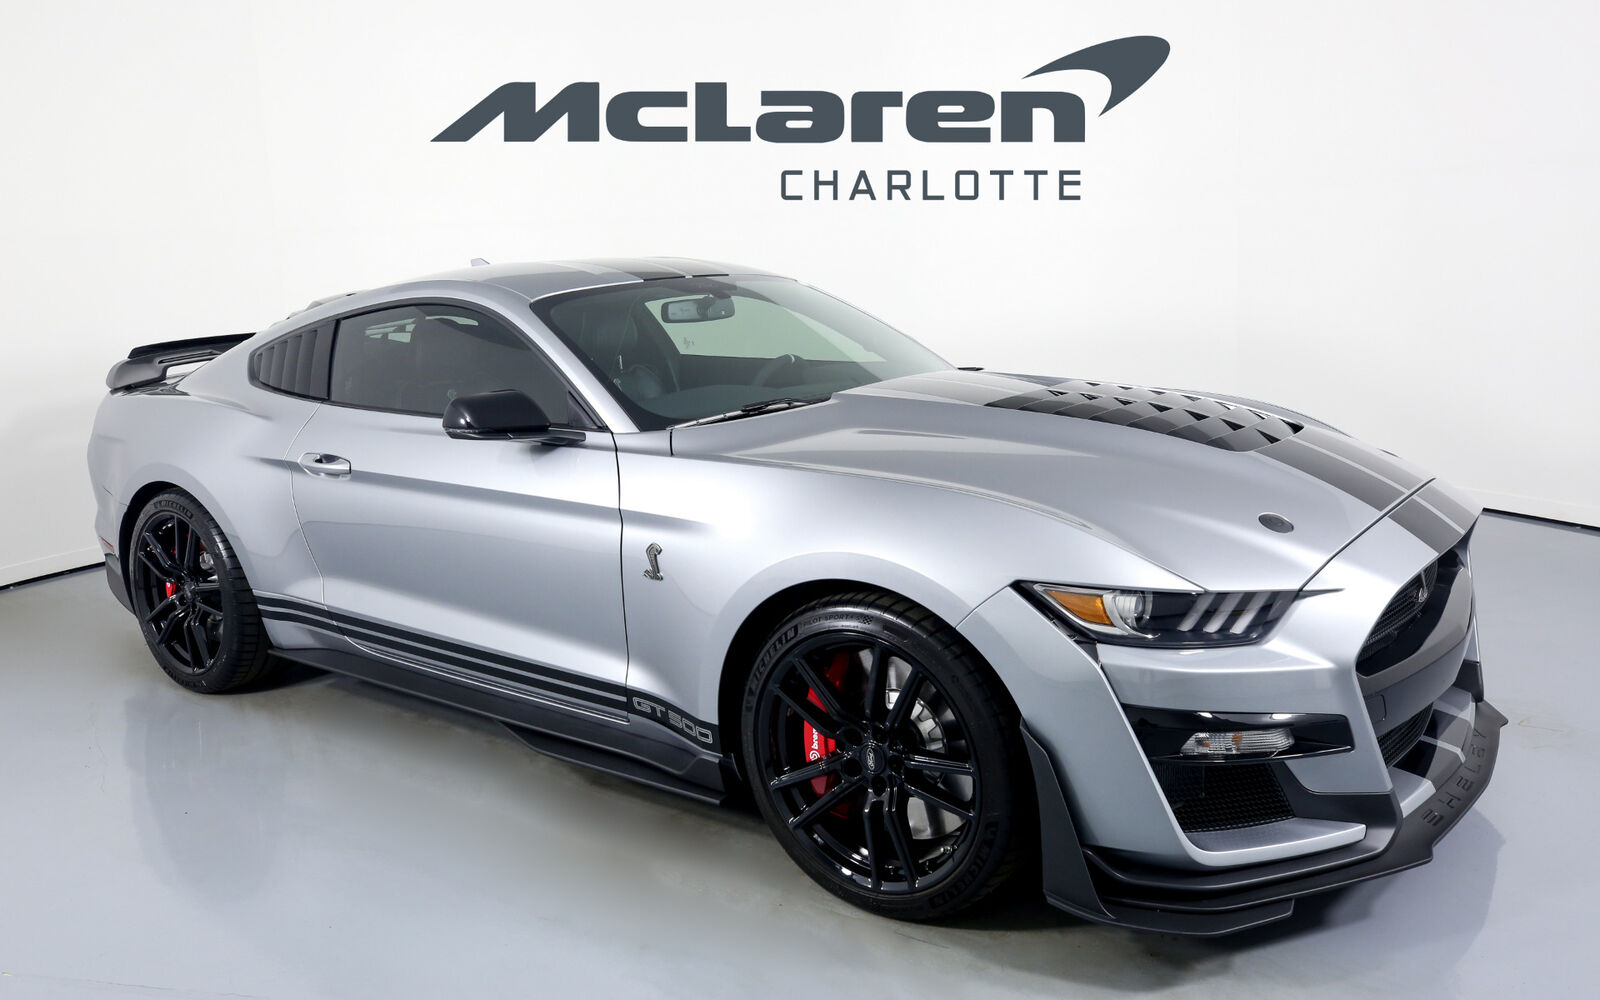 2020 Ford Mustang, Iconic Silver with 1938 Miles available now!